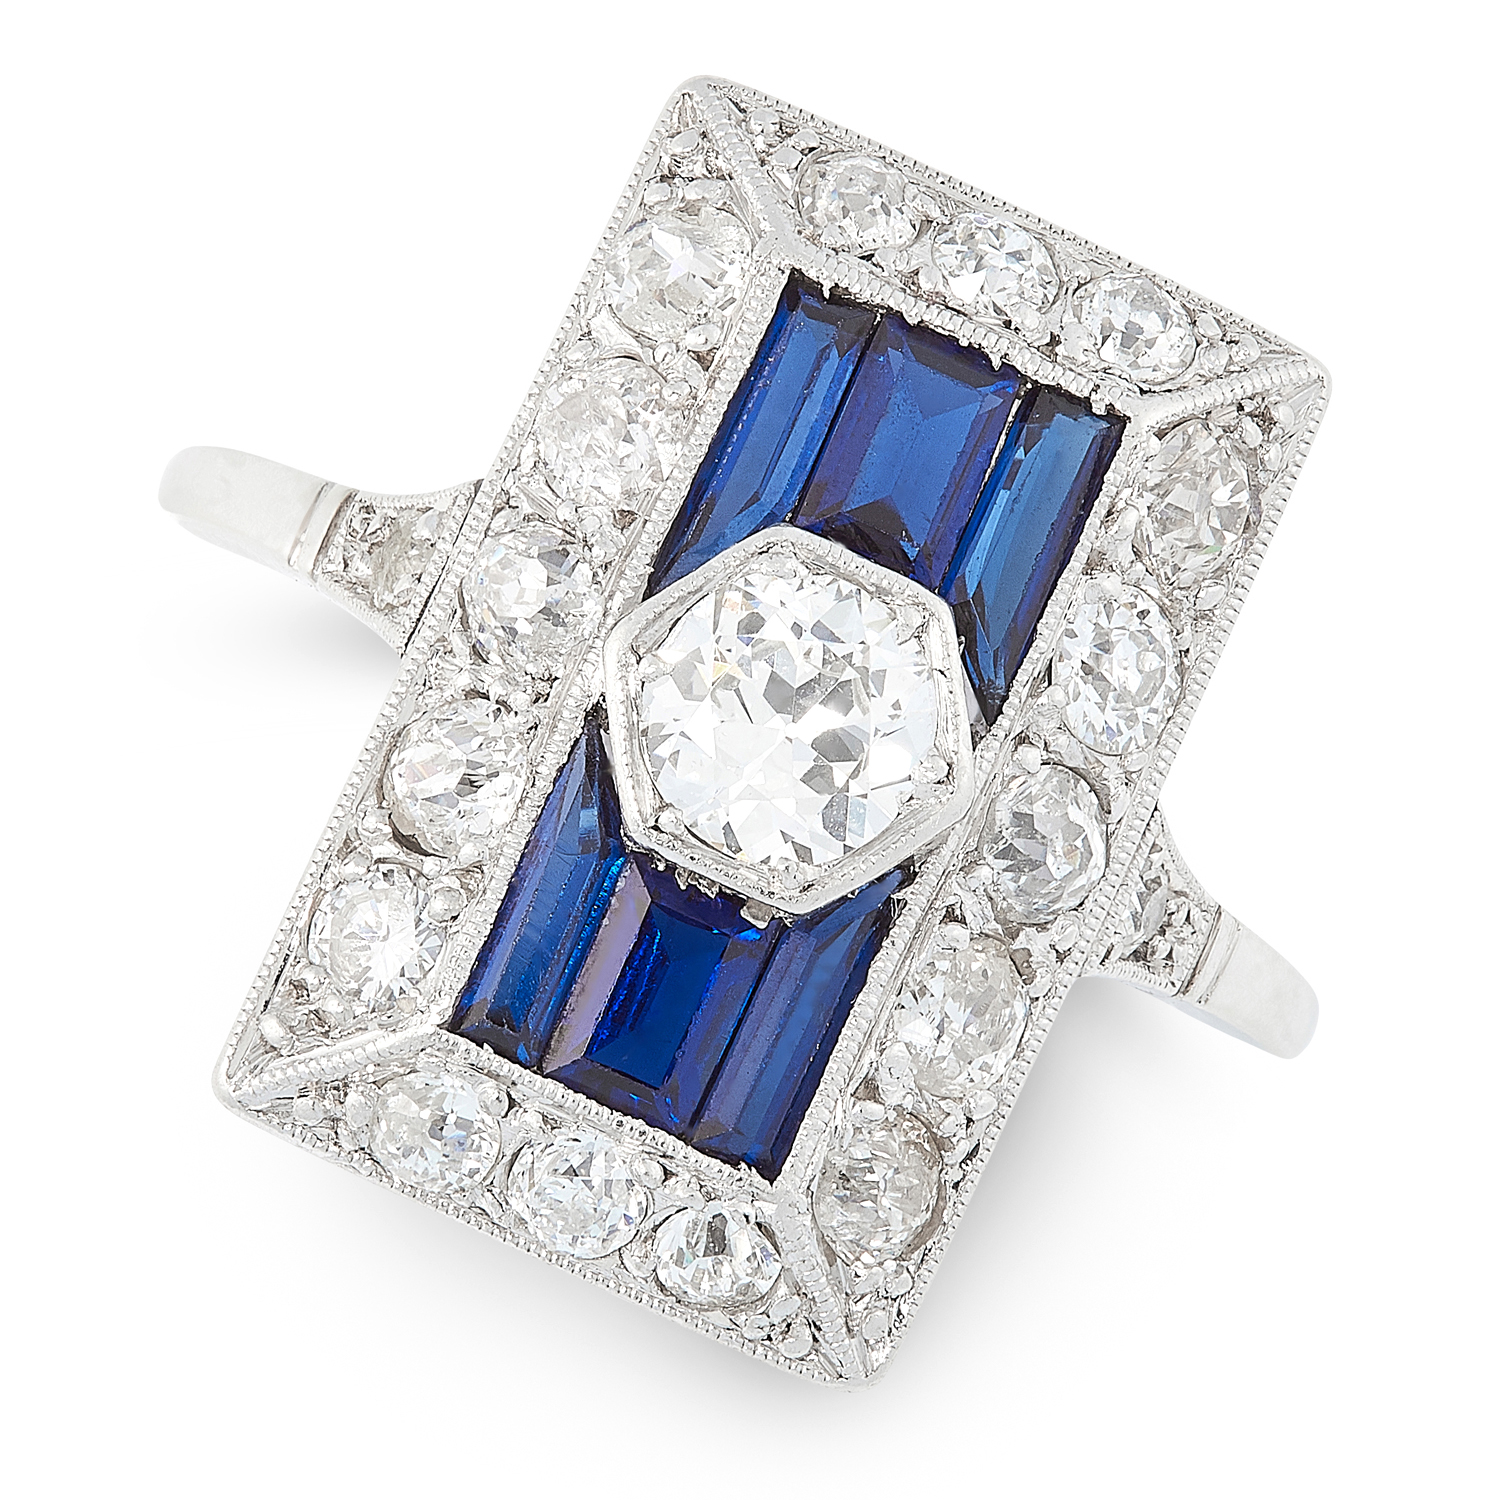 AN ART DECO DIAMOND AND SAPPHIRE RING, EARLY 20TH CENTURY set with an old cut diamond of 0.45 carats